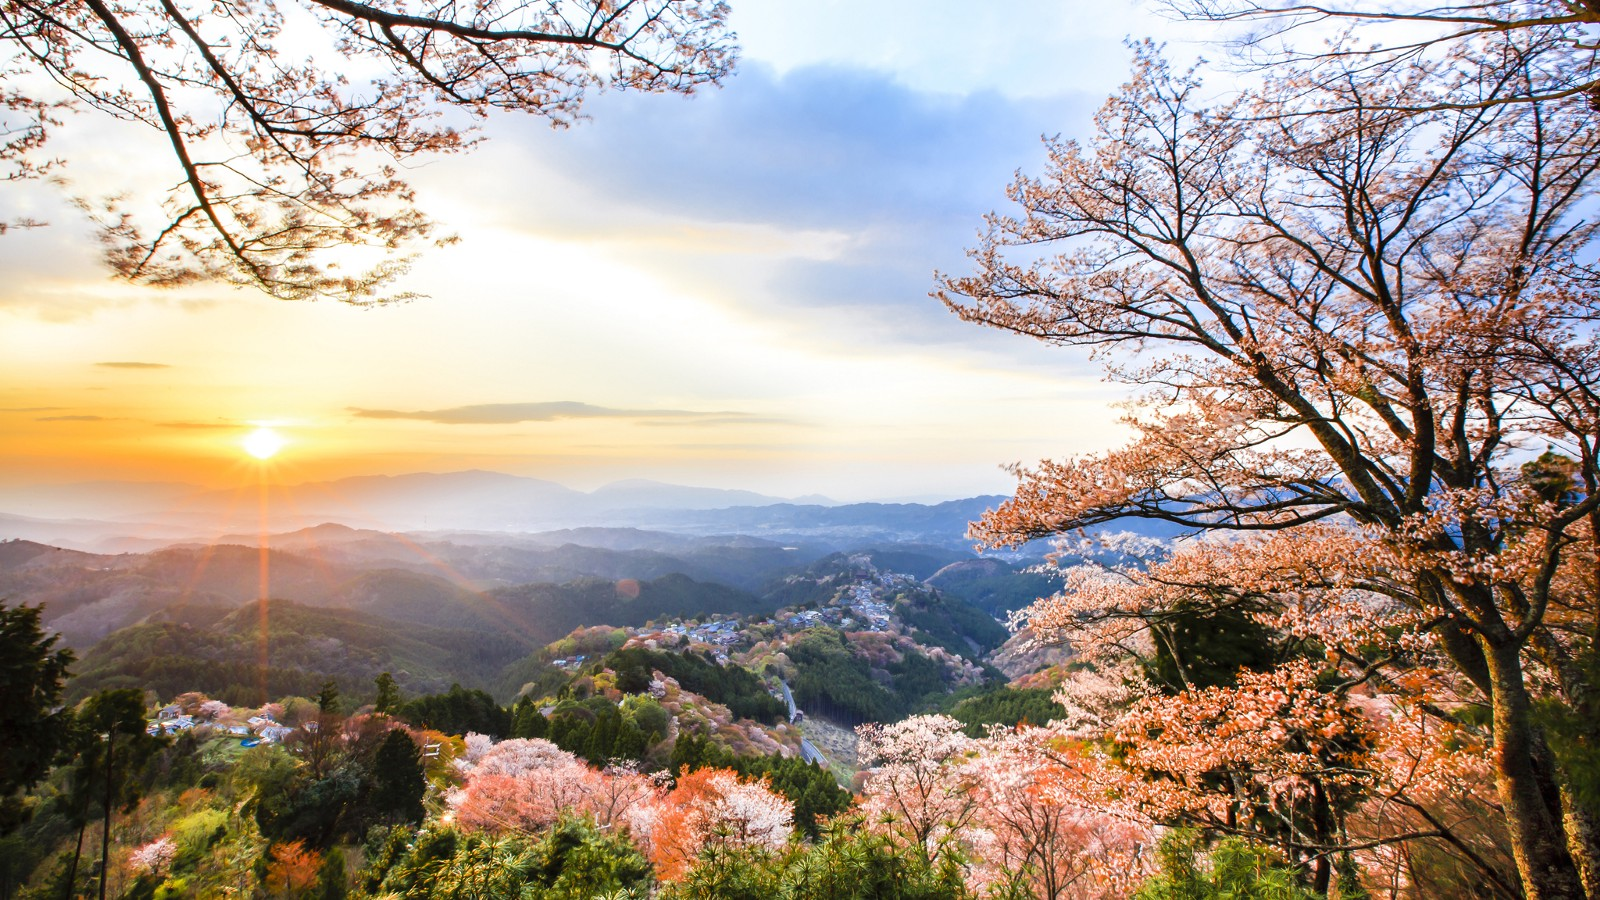 Cherry blossoms at Mount Yoshino, Nara Prefecture, Japan